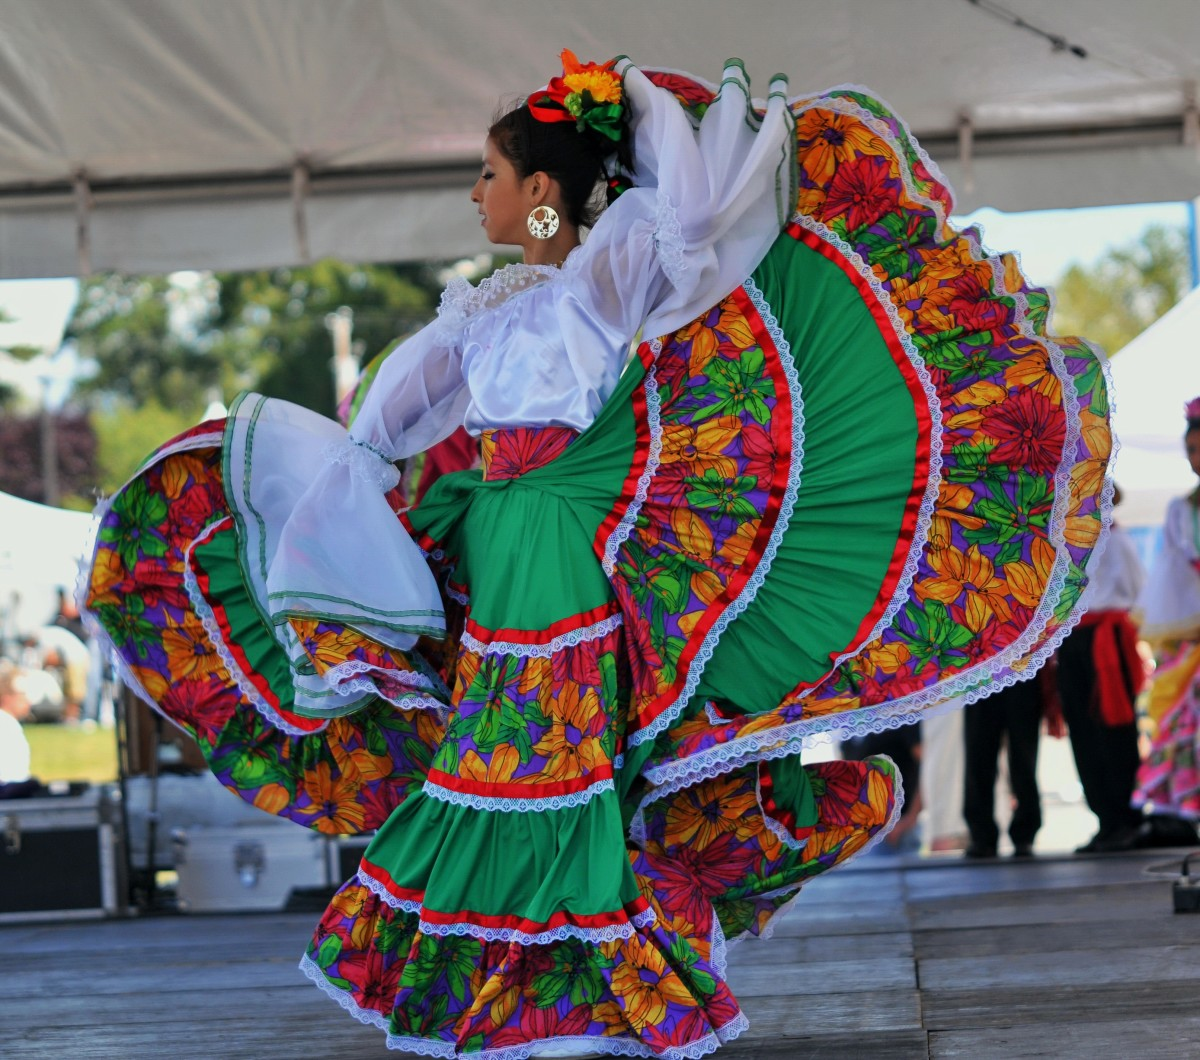 Traditional Mexican folk dancing can be a great addition to your Cinco de Mayo party!